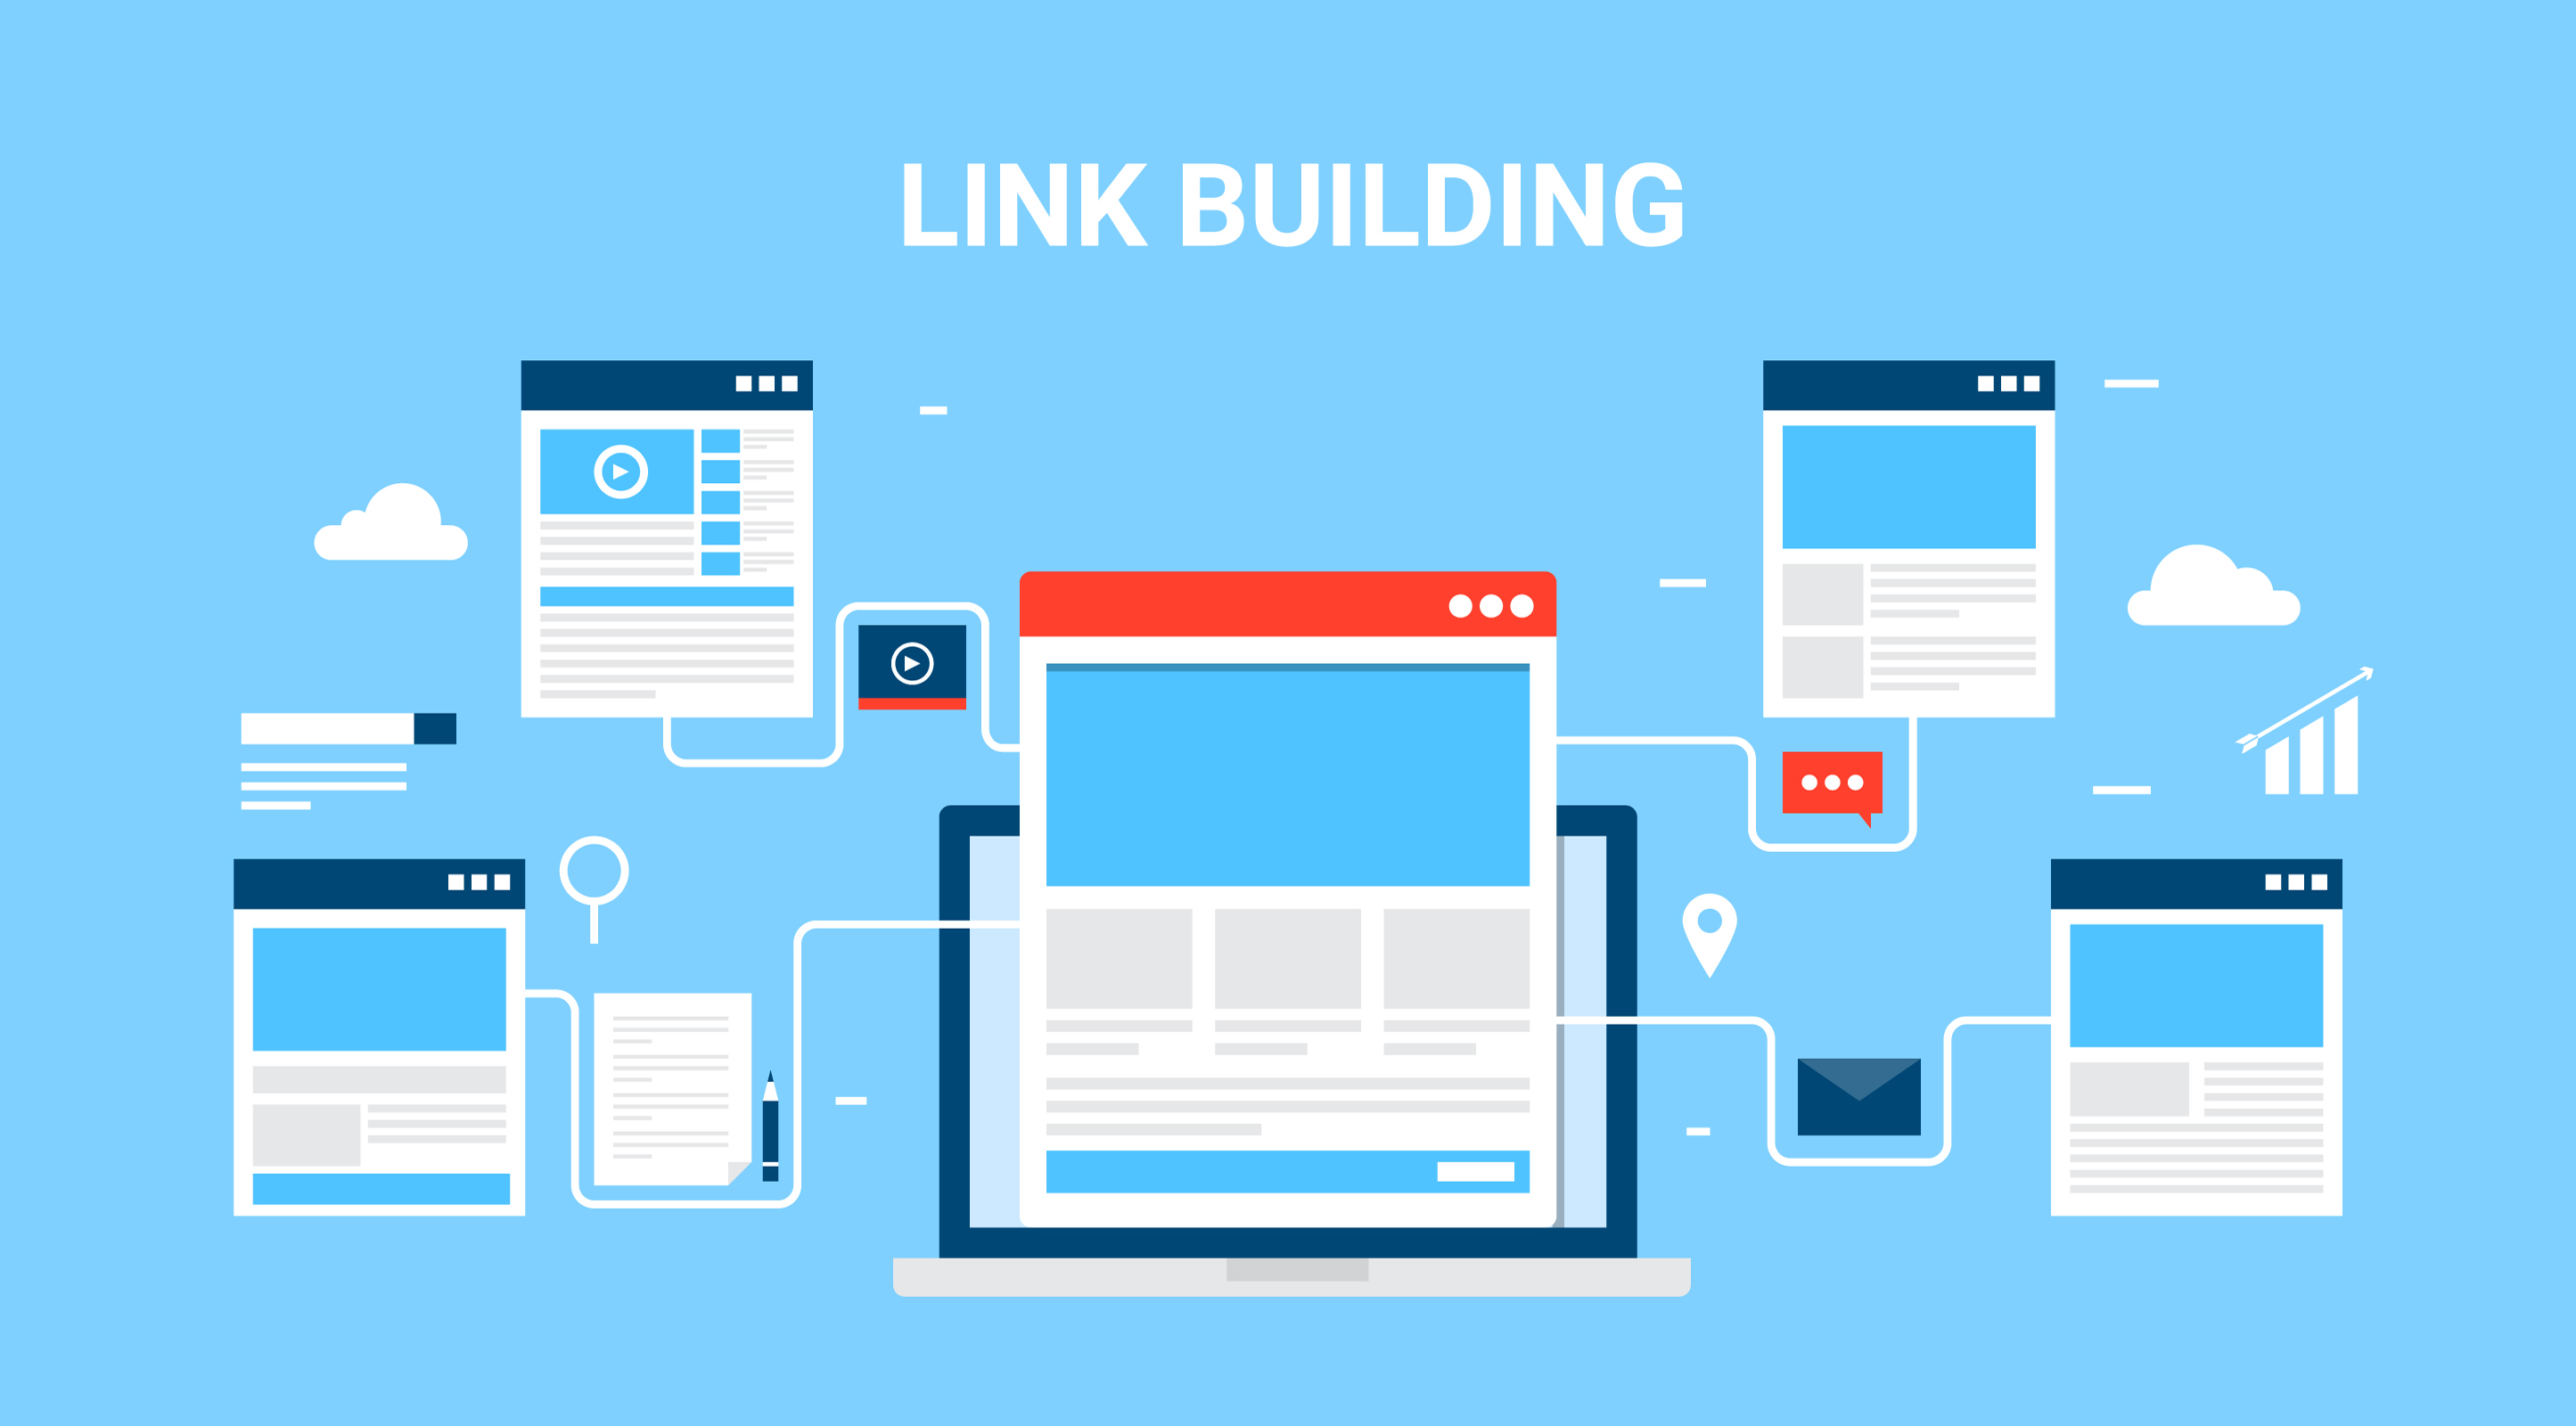 Why Most Link Building Strategies Ultimately Fail